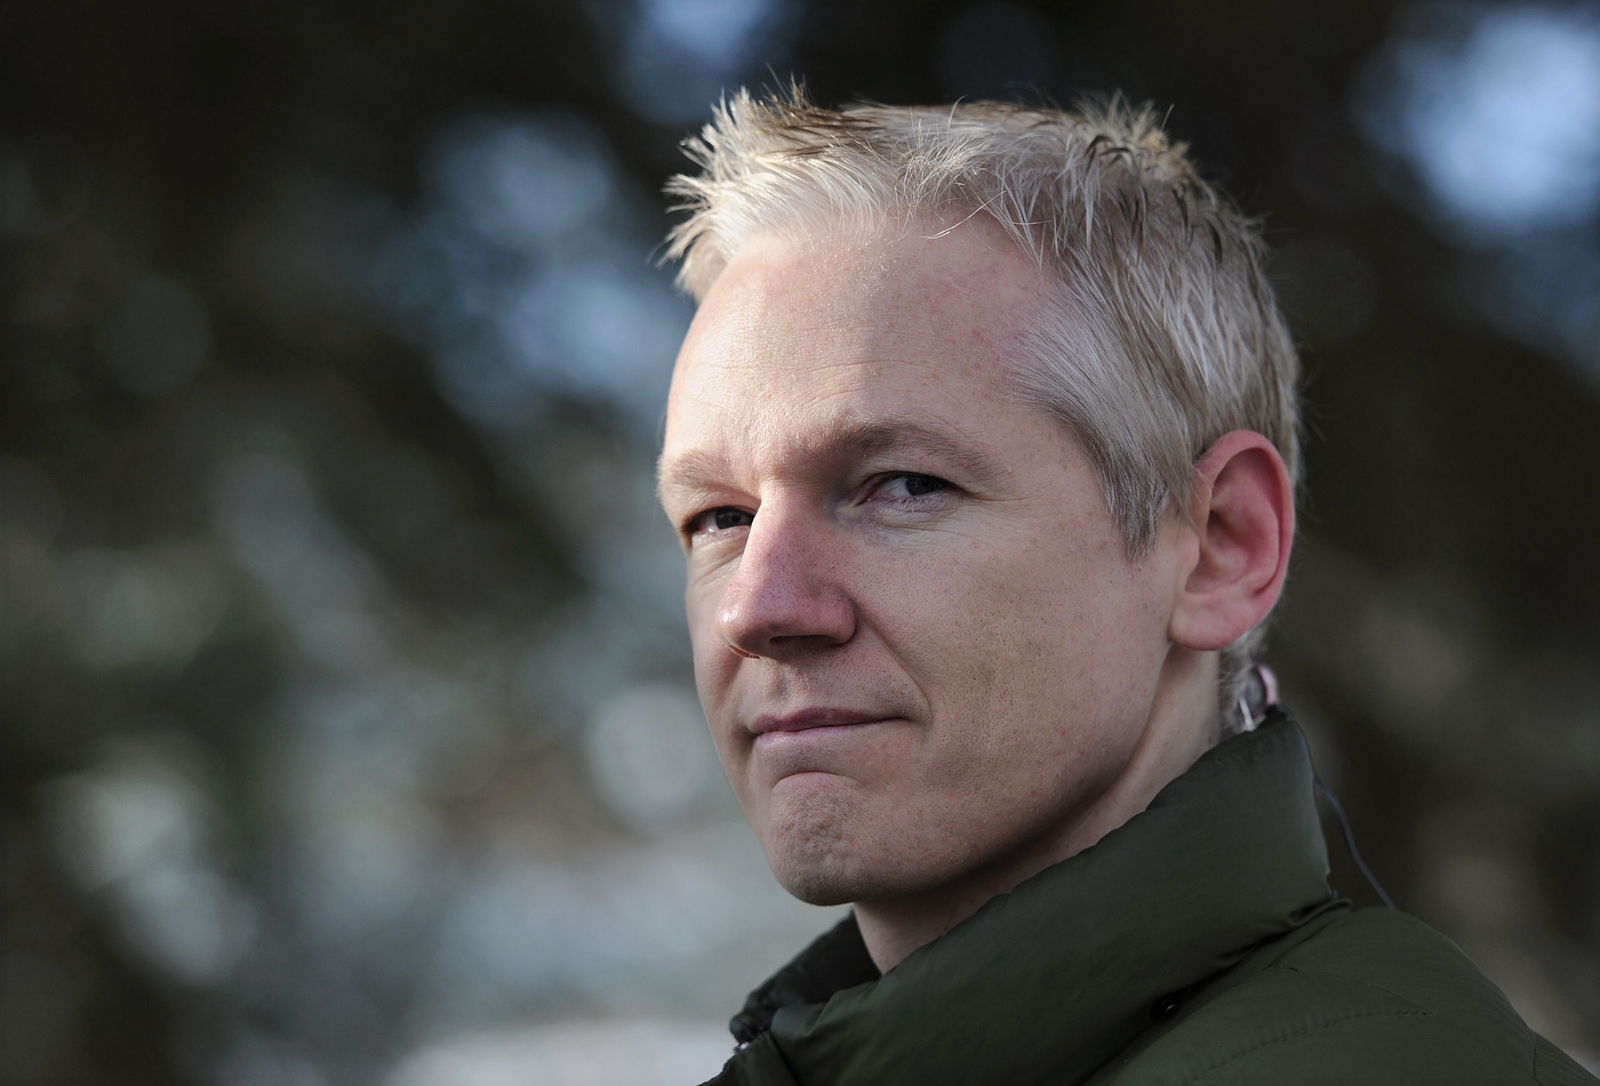 julian assange brands cia incompetent after leak of hacking secrets